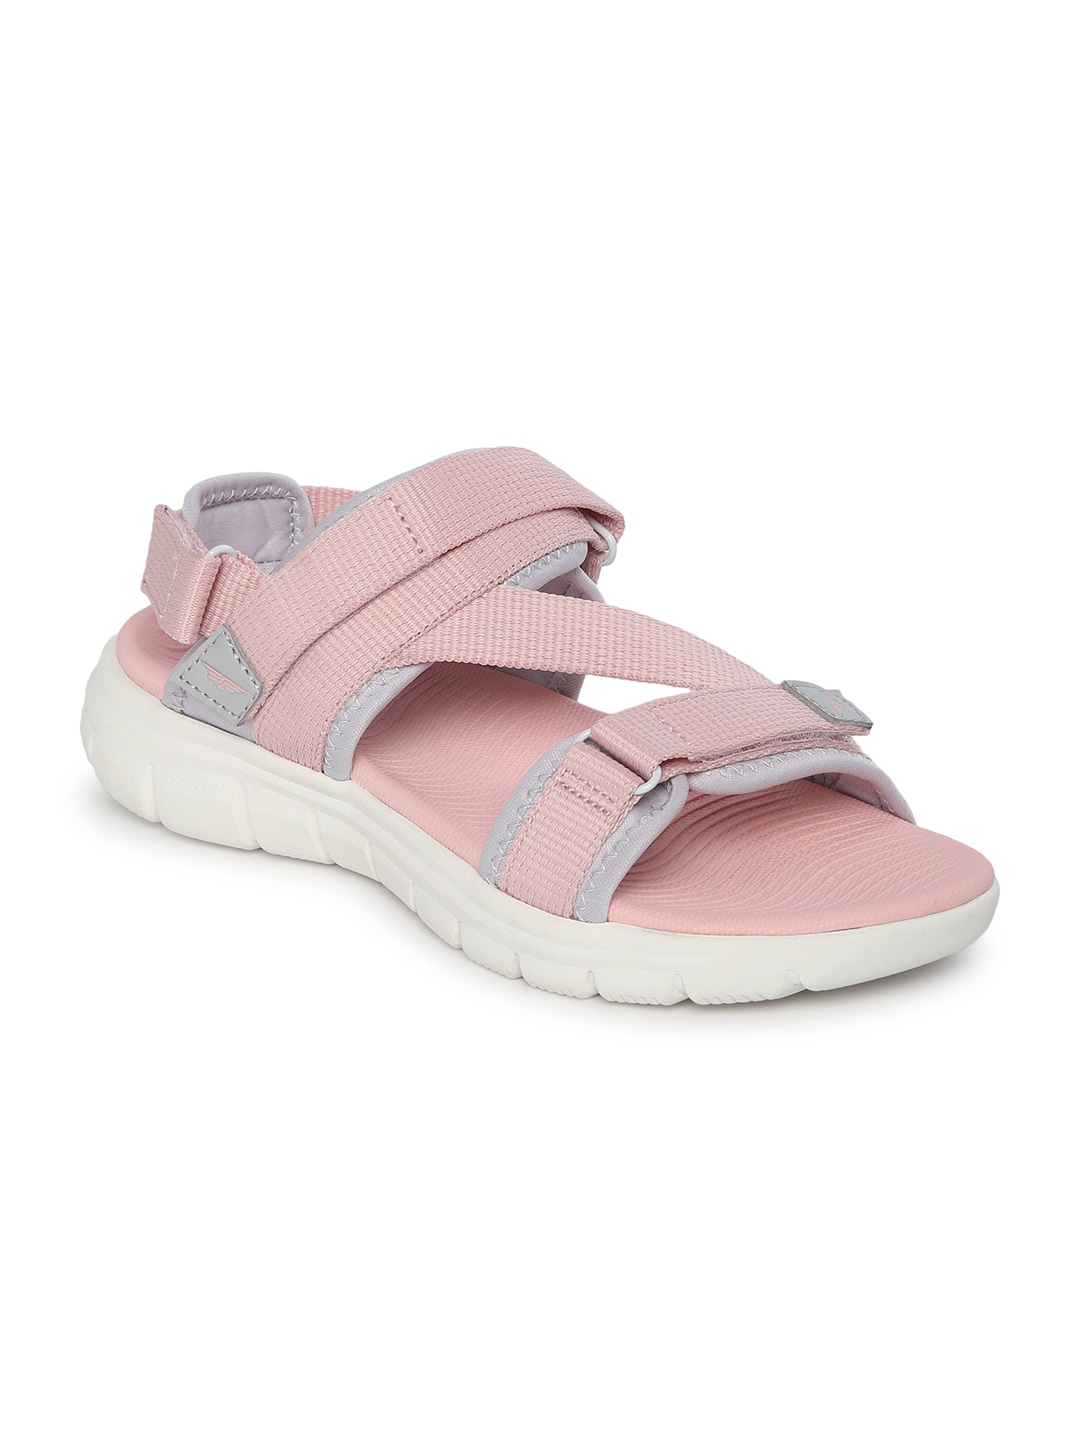 Pink Sports Sandals